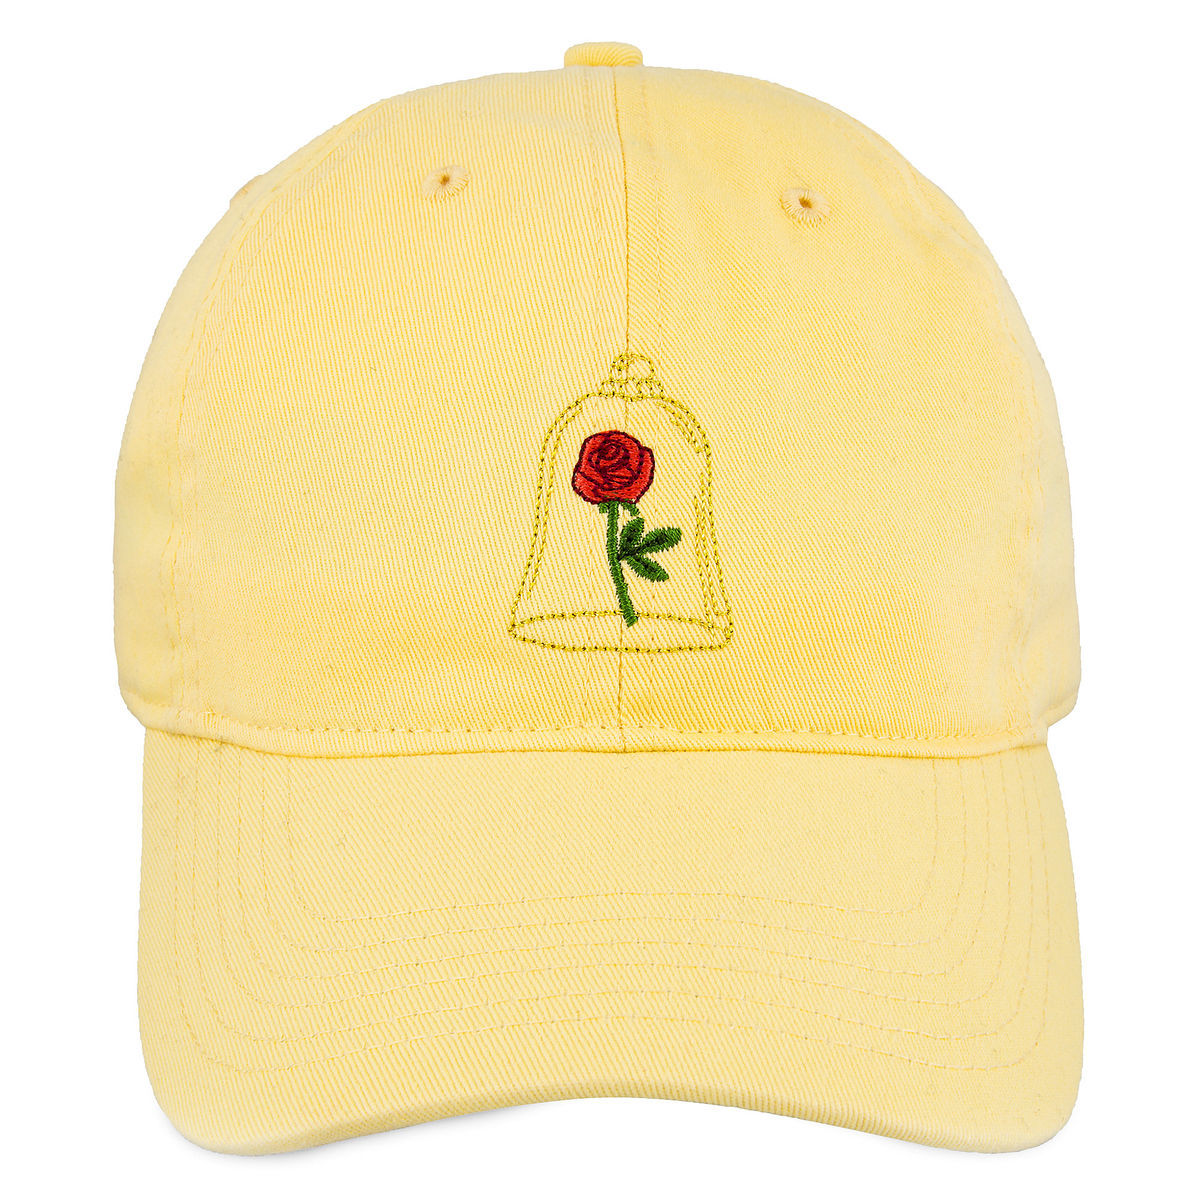 db215e1b ... rose embroidery on front ''Tale as old as time'' embroidery on back  Curved bill Embroidered eyelets Adjustable back strap The bare necessities.